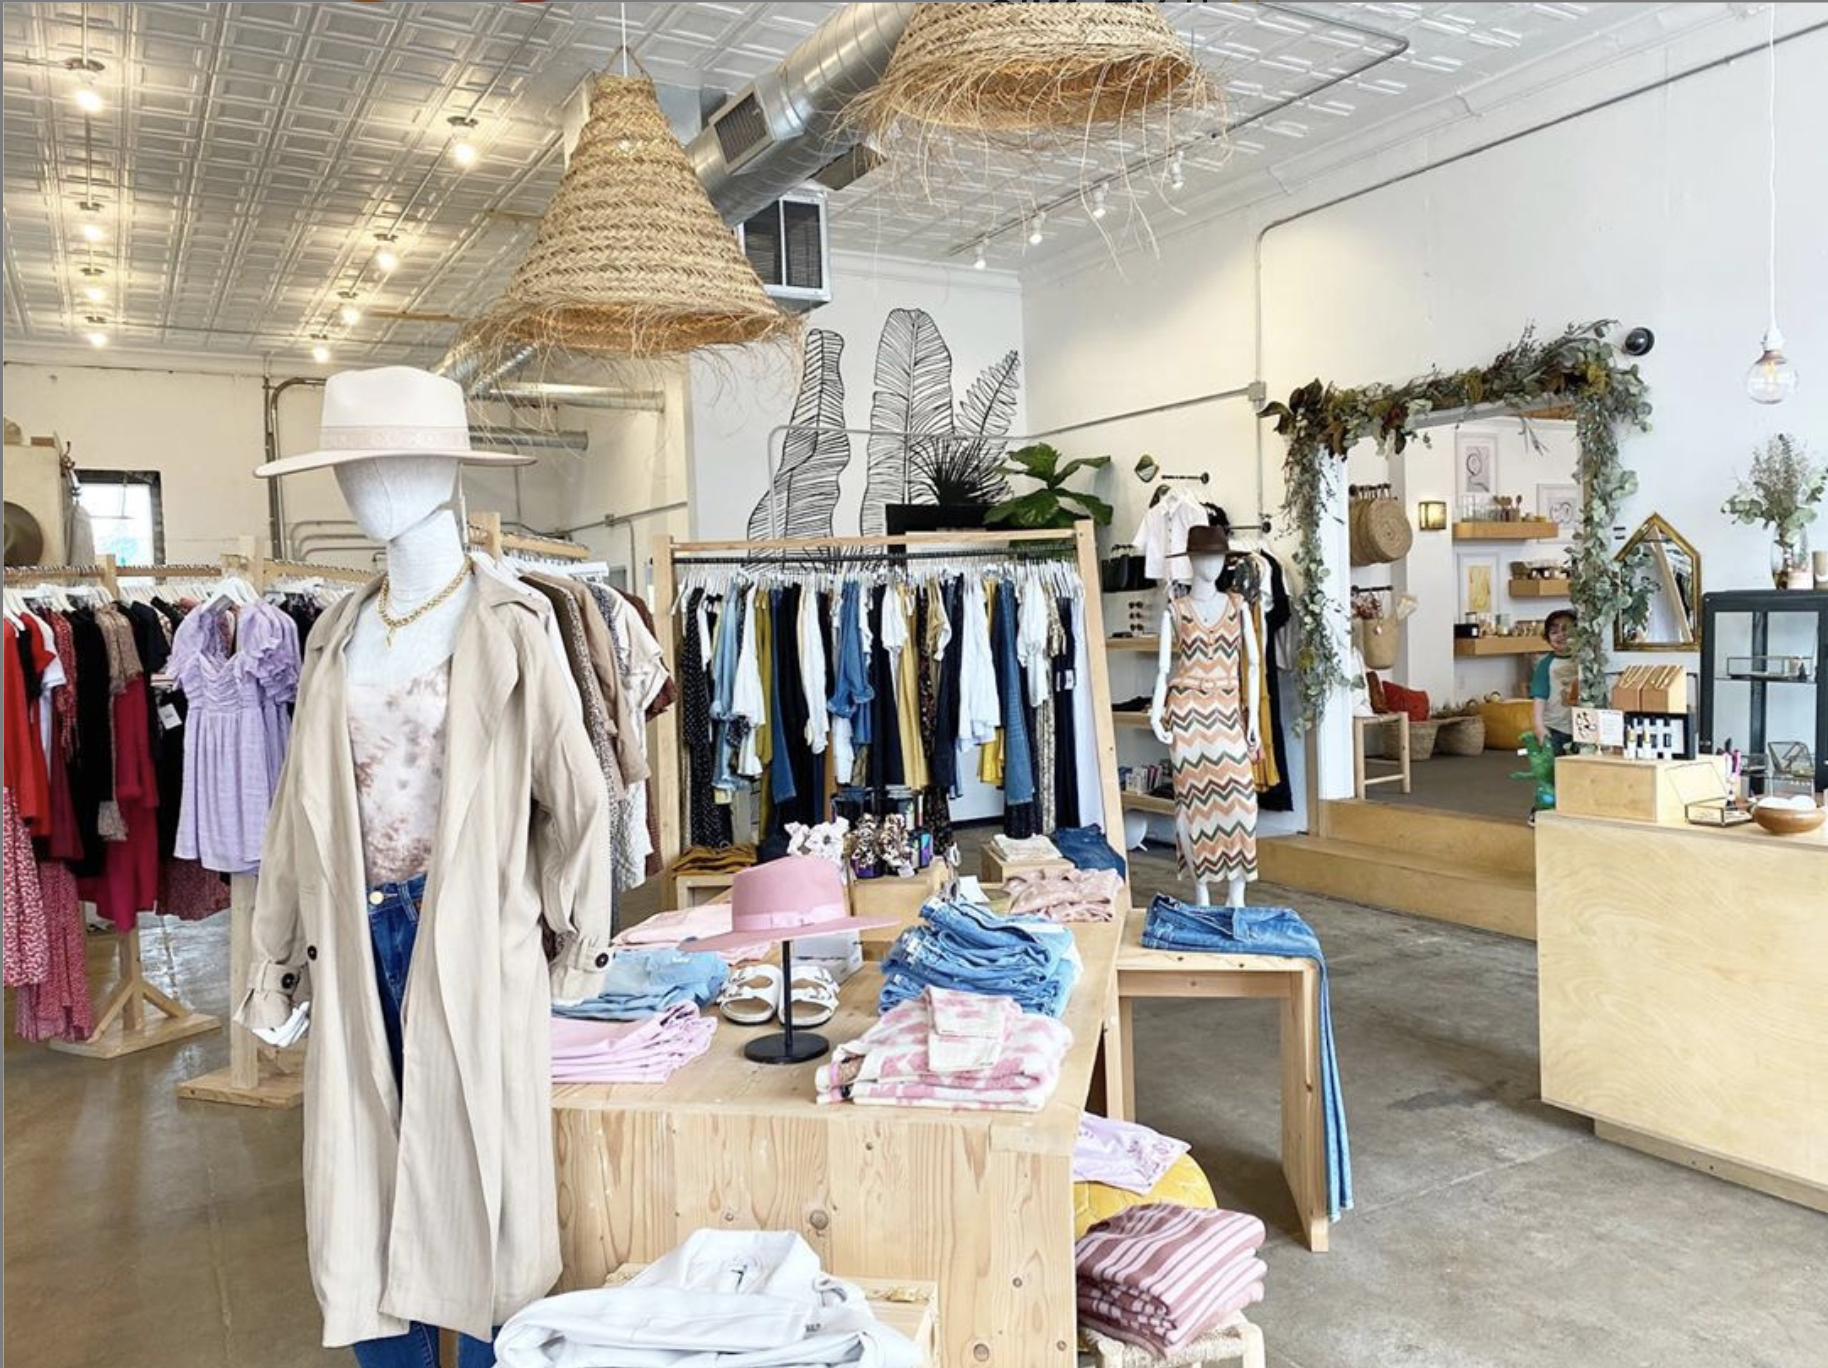 How To Shop Small From Home While Social Distancing D Magazine